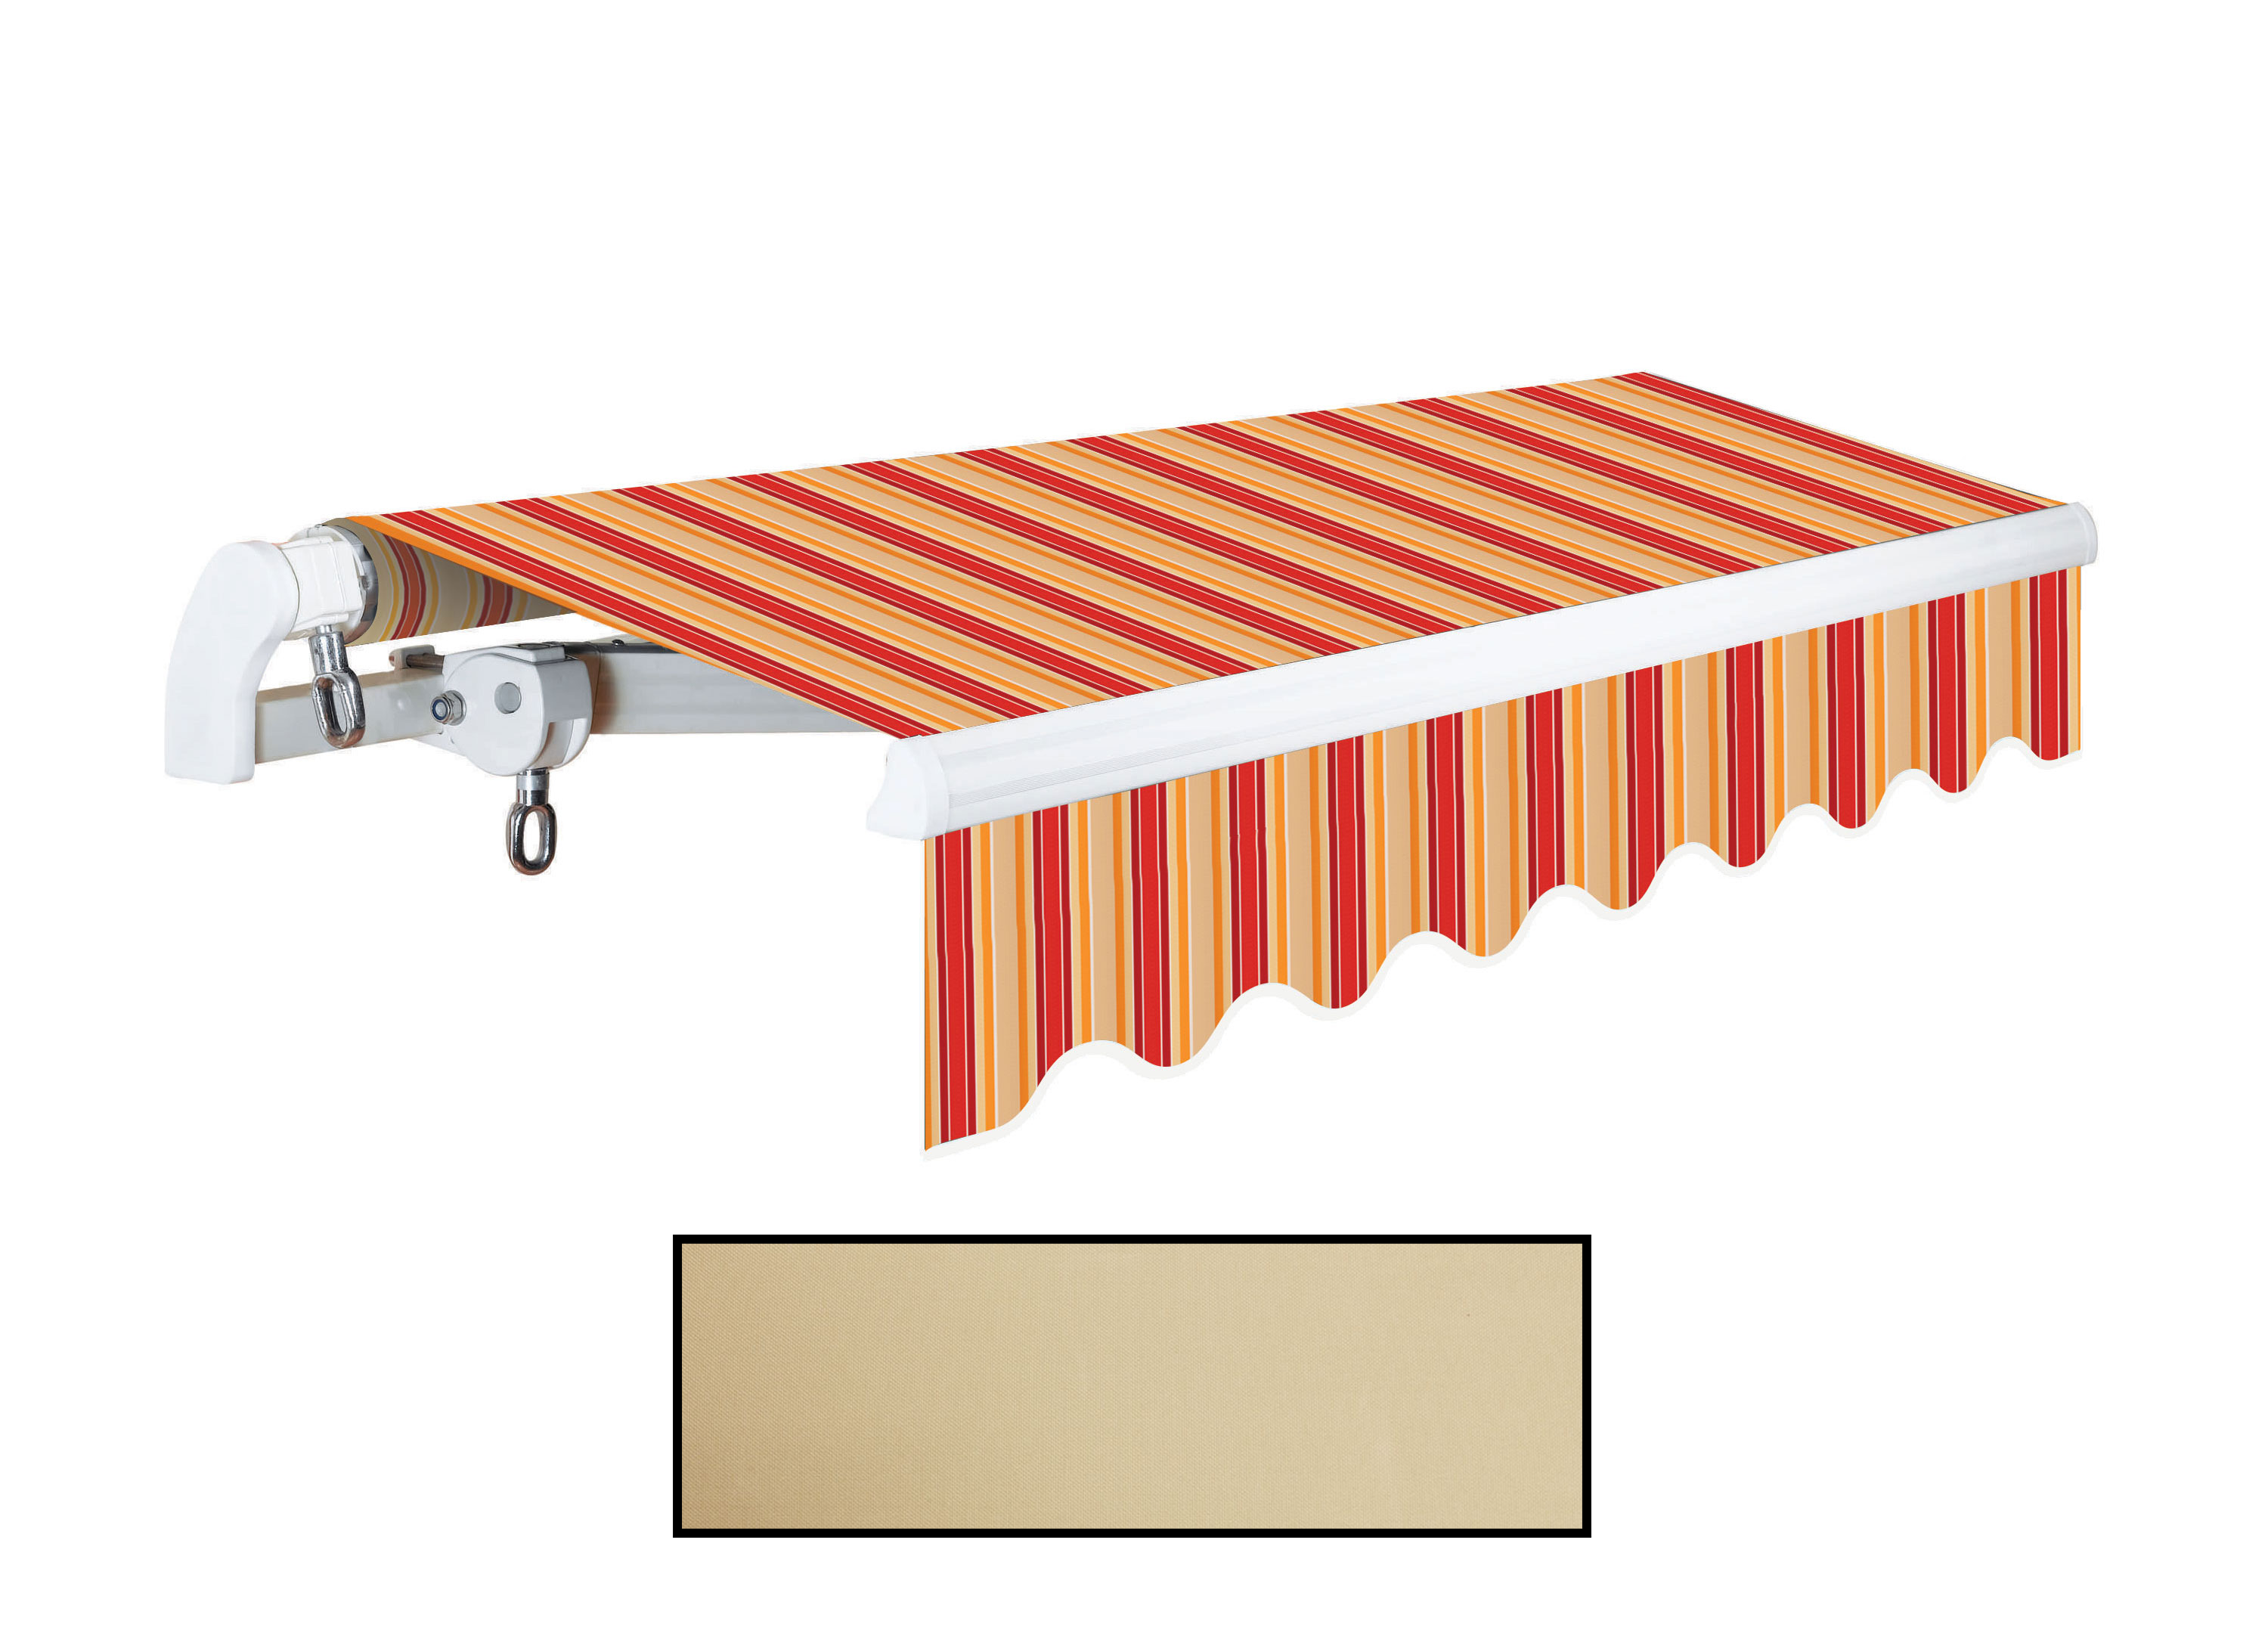 Advaning 10x8ft. S Series Manual Awning, Linen Beige